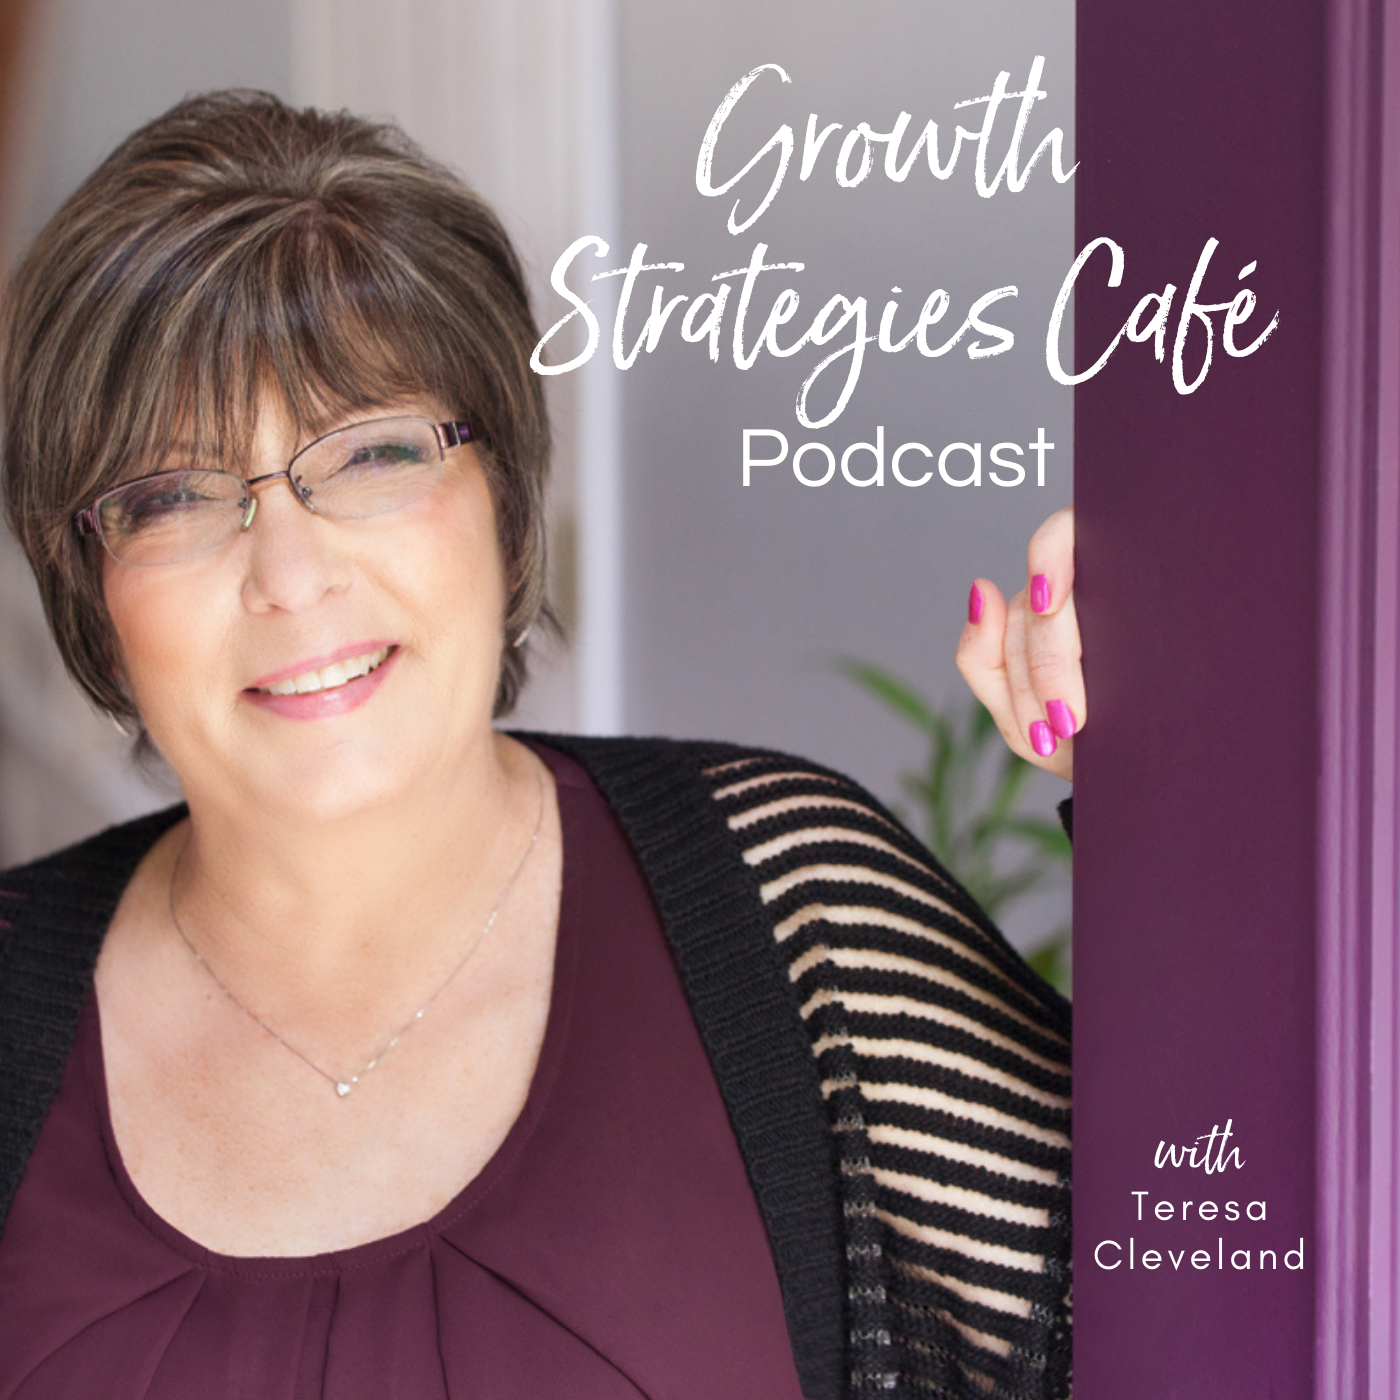 Growth Strategies Cafe Podcast with Teresa Cleveland